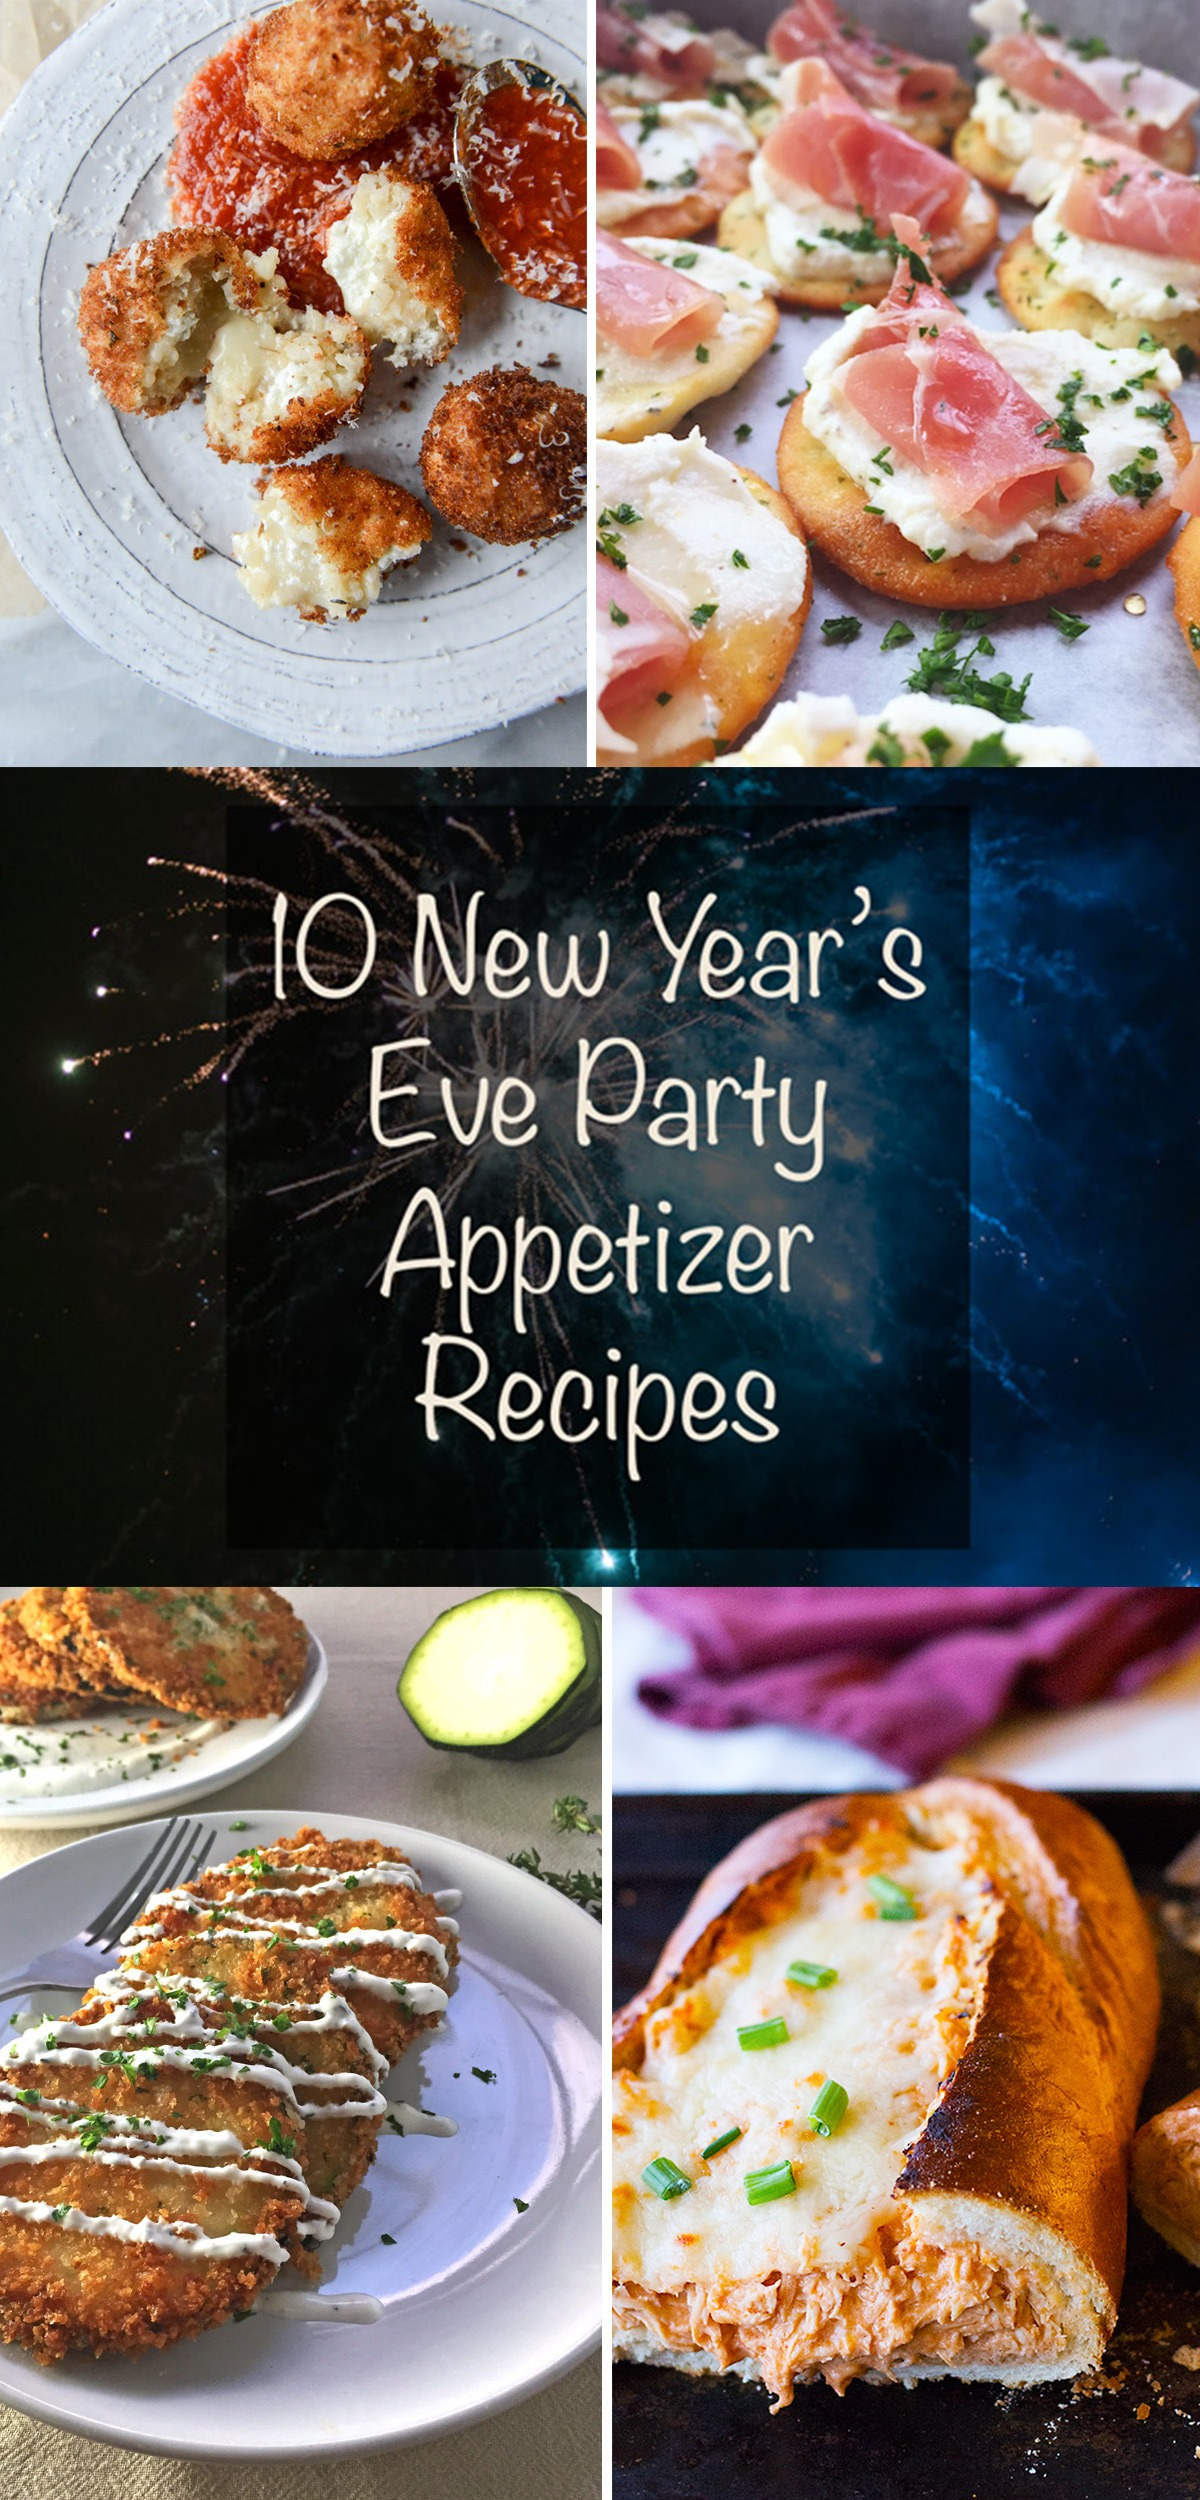 10 new year s eve party appetizer recipes seasonly creations for Appetizer ideas for new years eve party